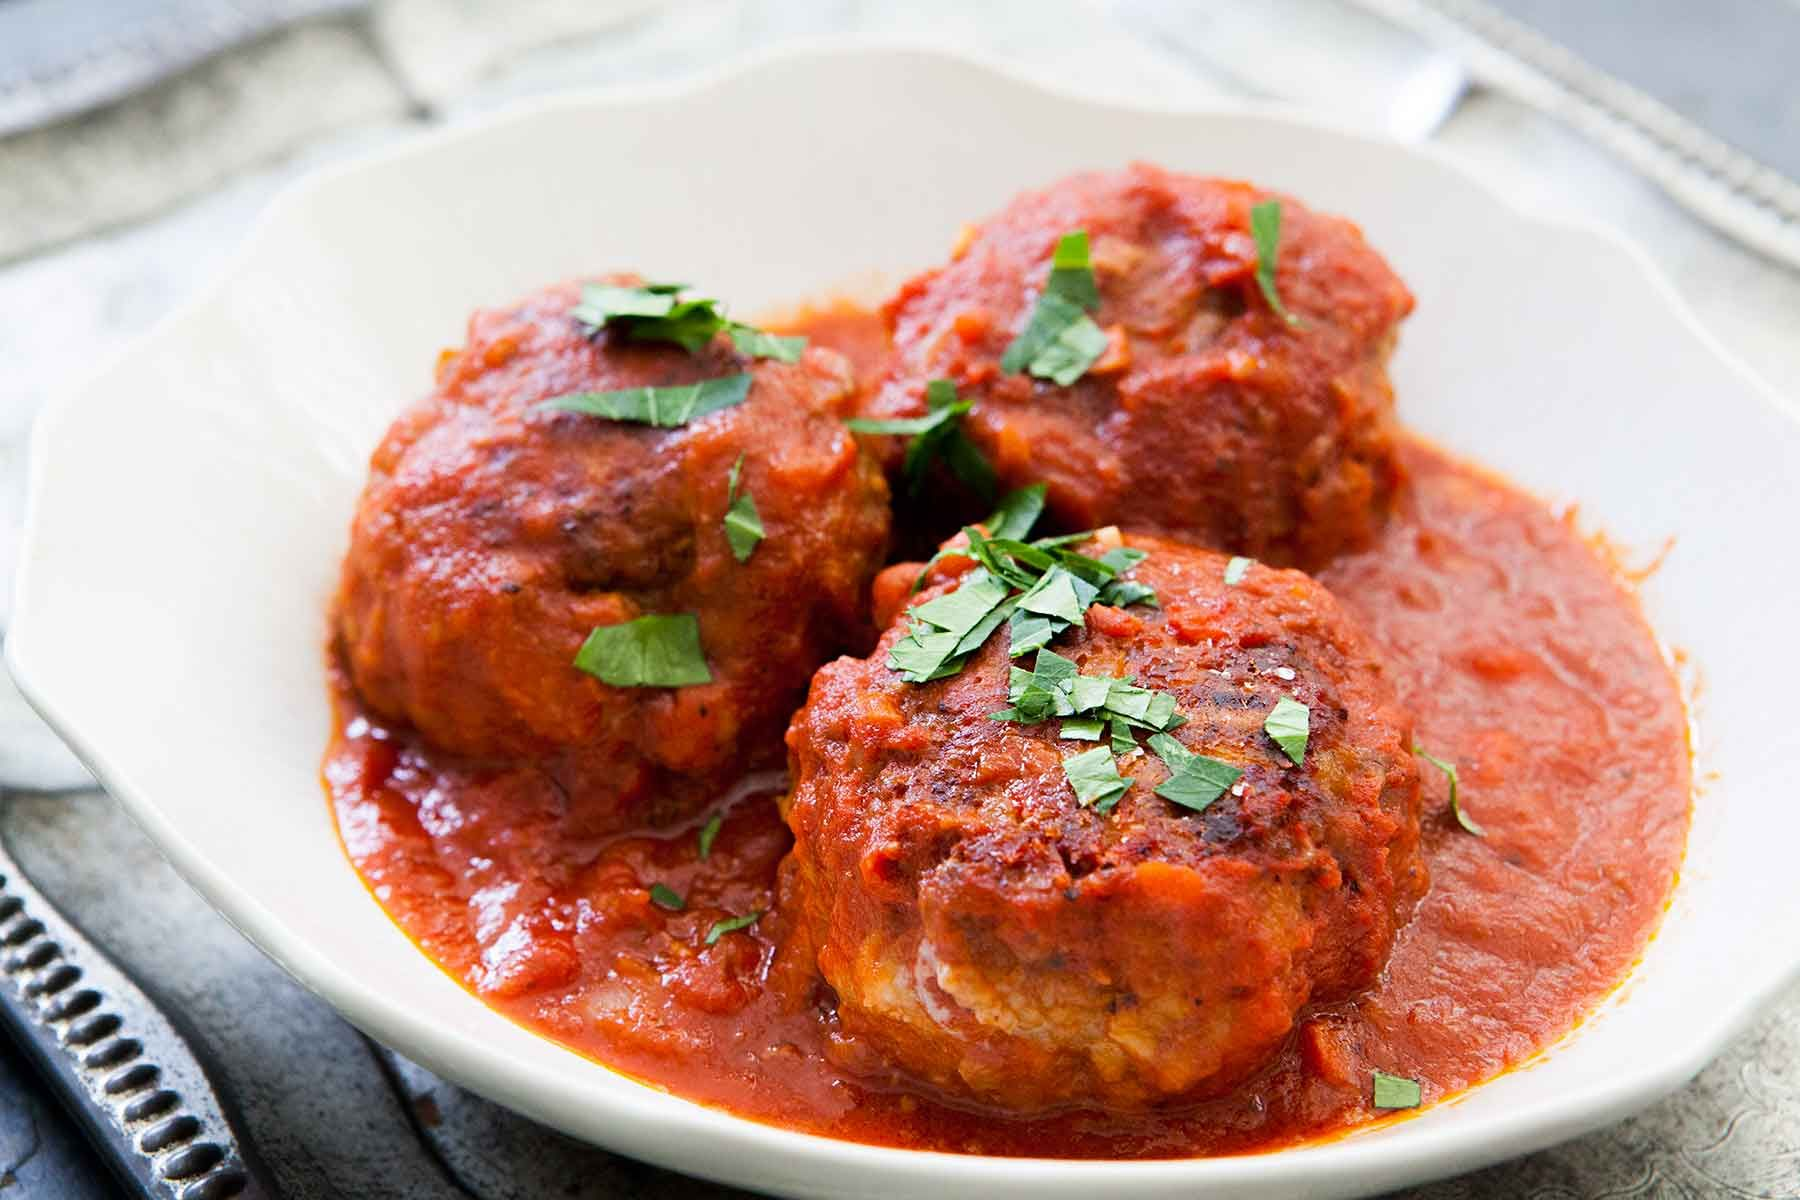 Italian Meatballs Recipe Simplyrecipes Com Recipe Italian Meatballs Recipe Recipes Italian Meatballs